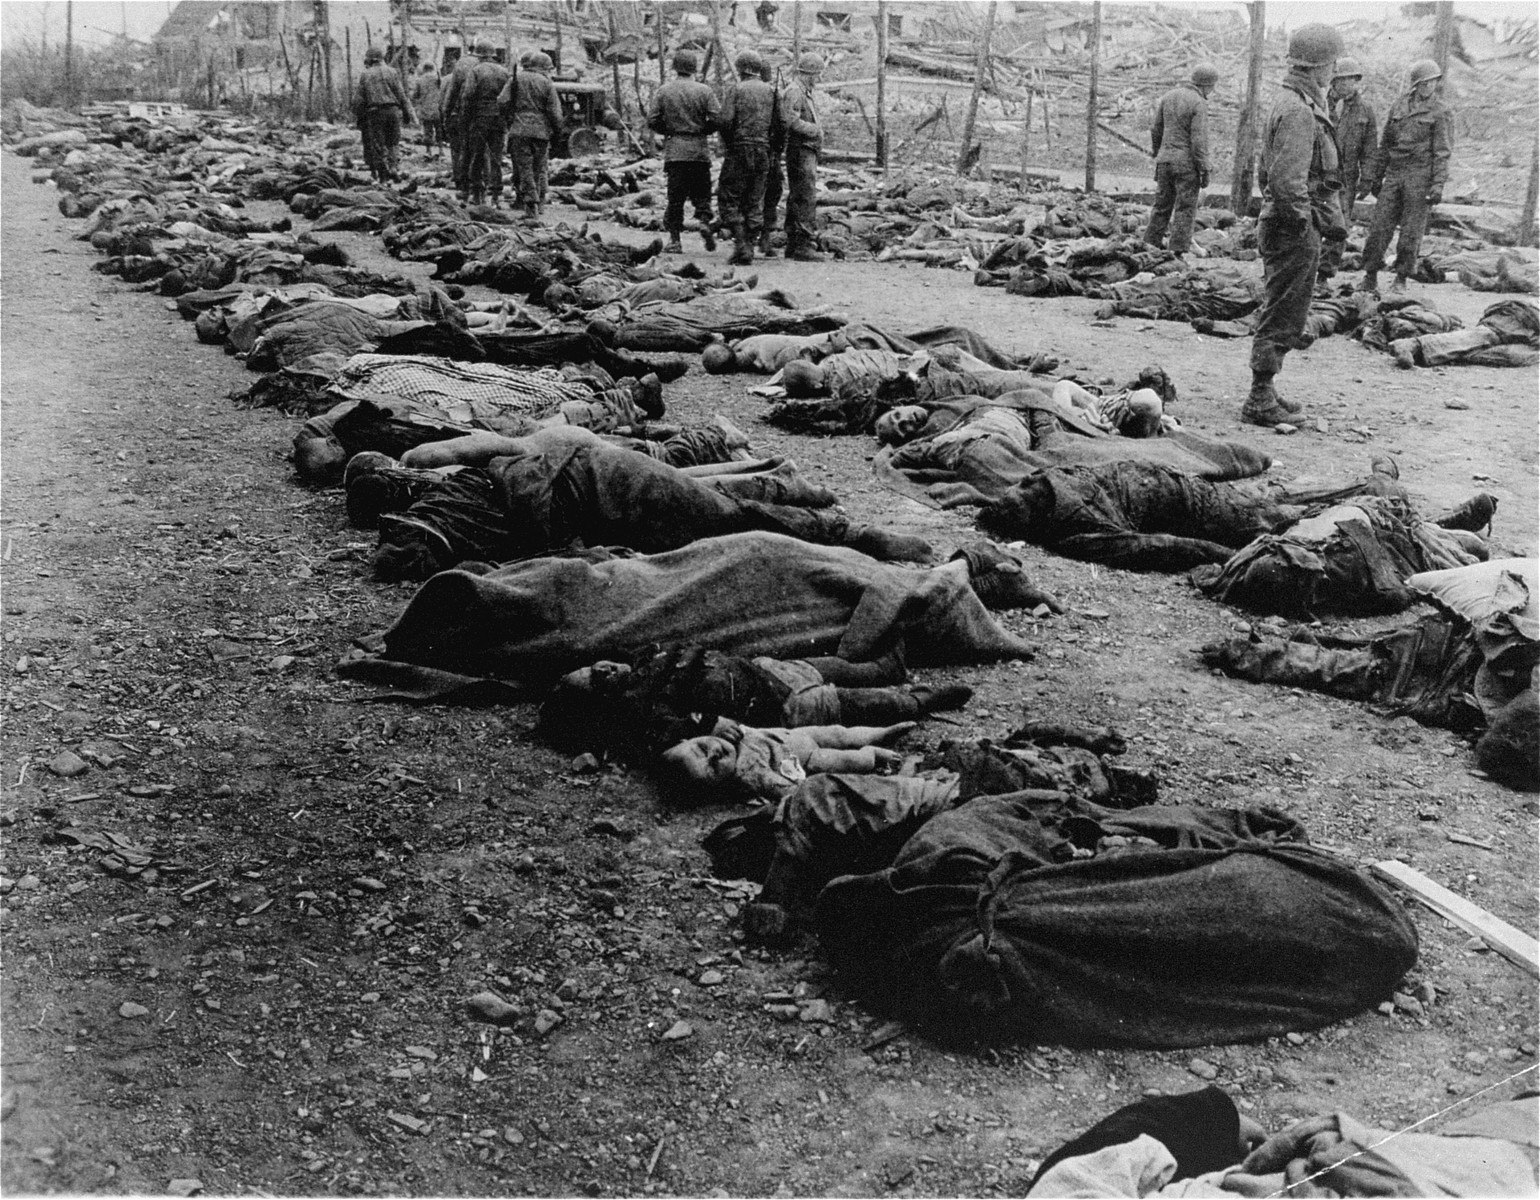 American troops stand amidst rows of corpses that were removed from the central barracks (Boelke Kaserne) of the Nordhausen concentration camp.